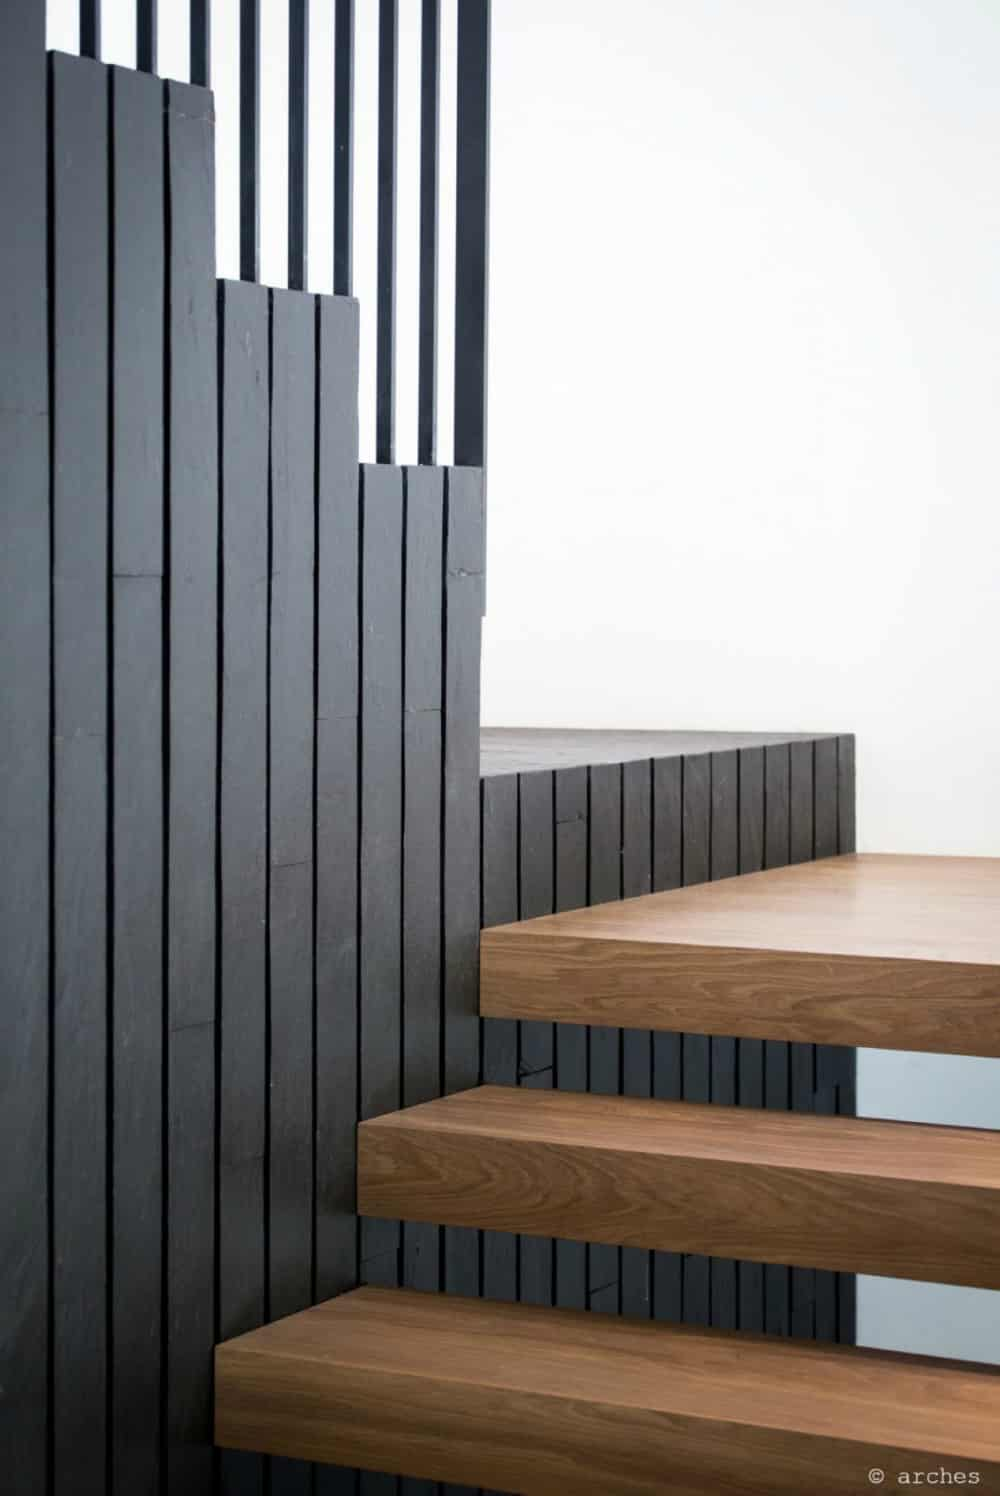 Thick steps appear levitating